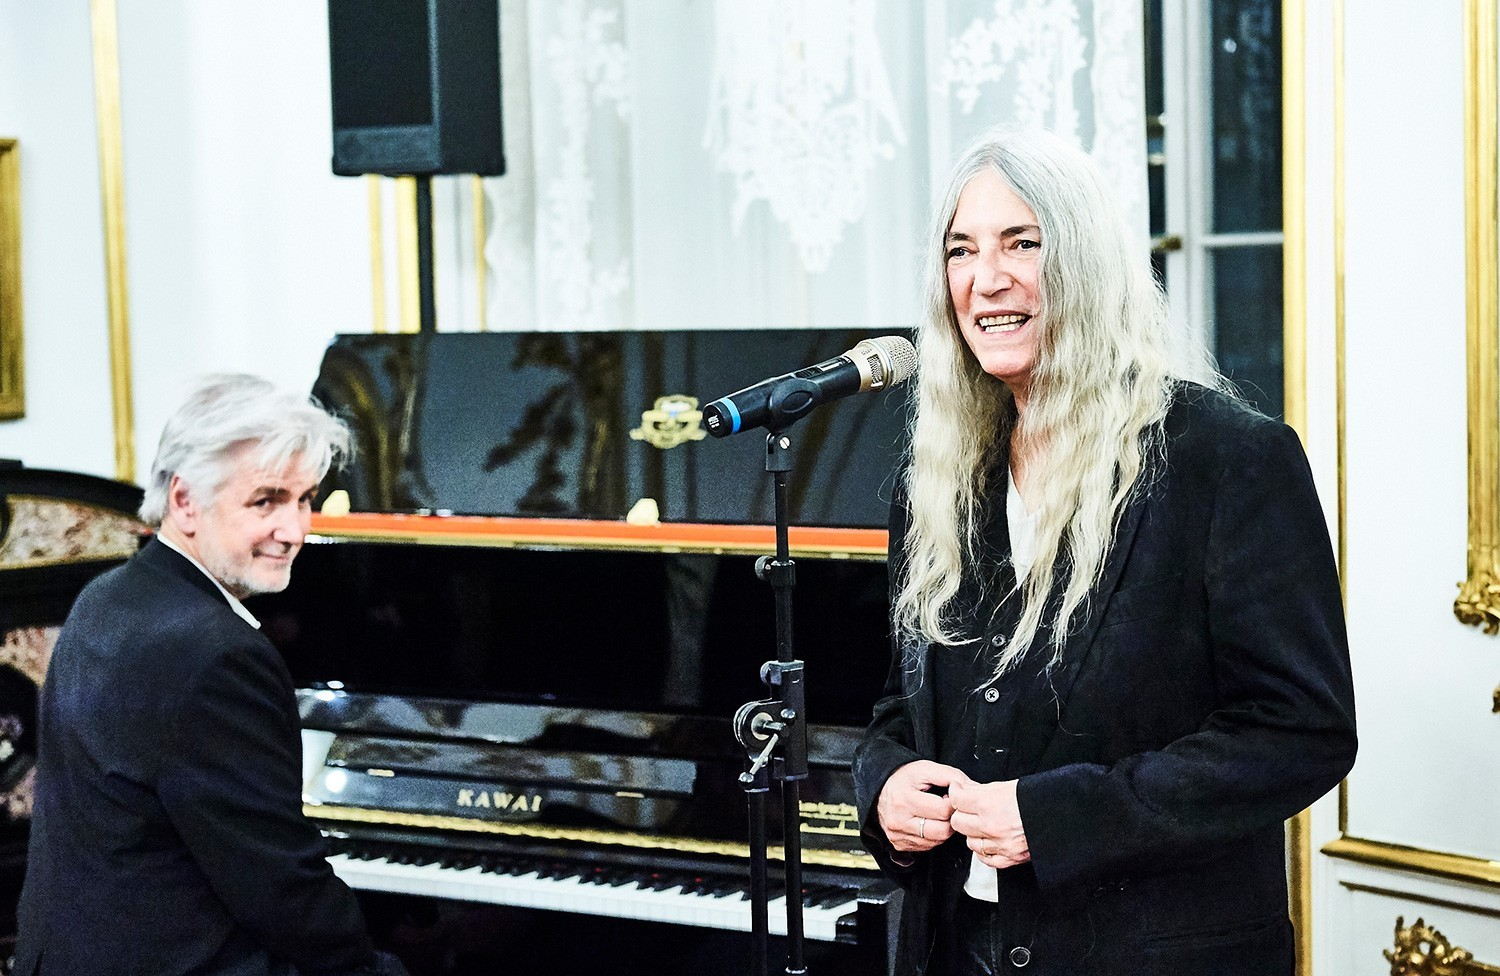 2019-Patti-Smith-DSC_6748_(c)_Aleksandra-Pawloff_.jpg